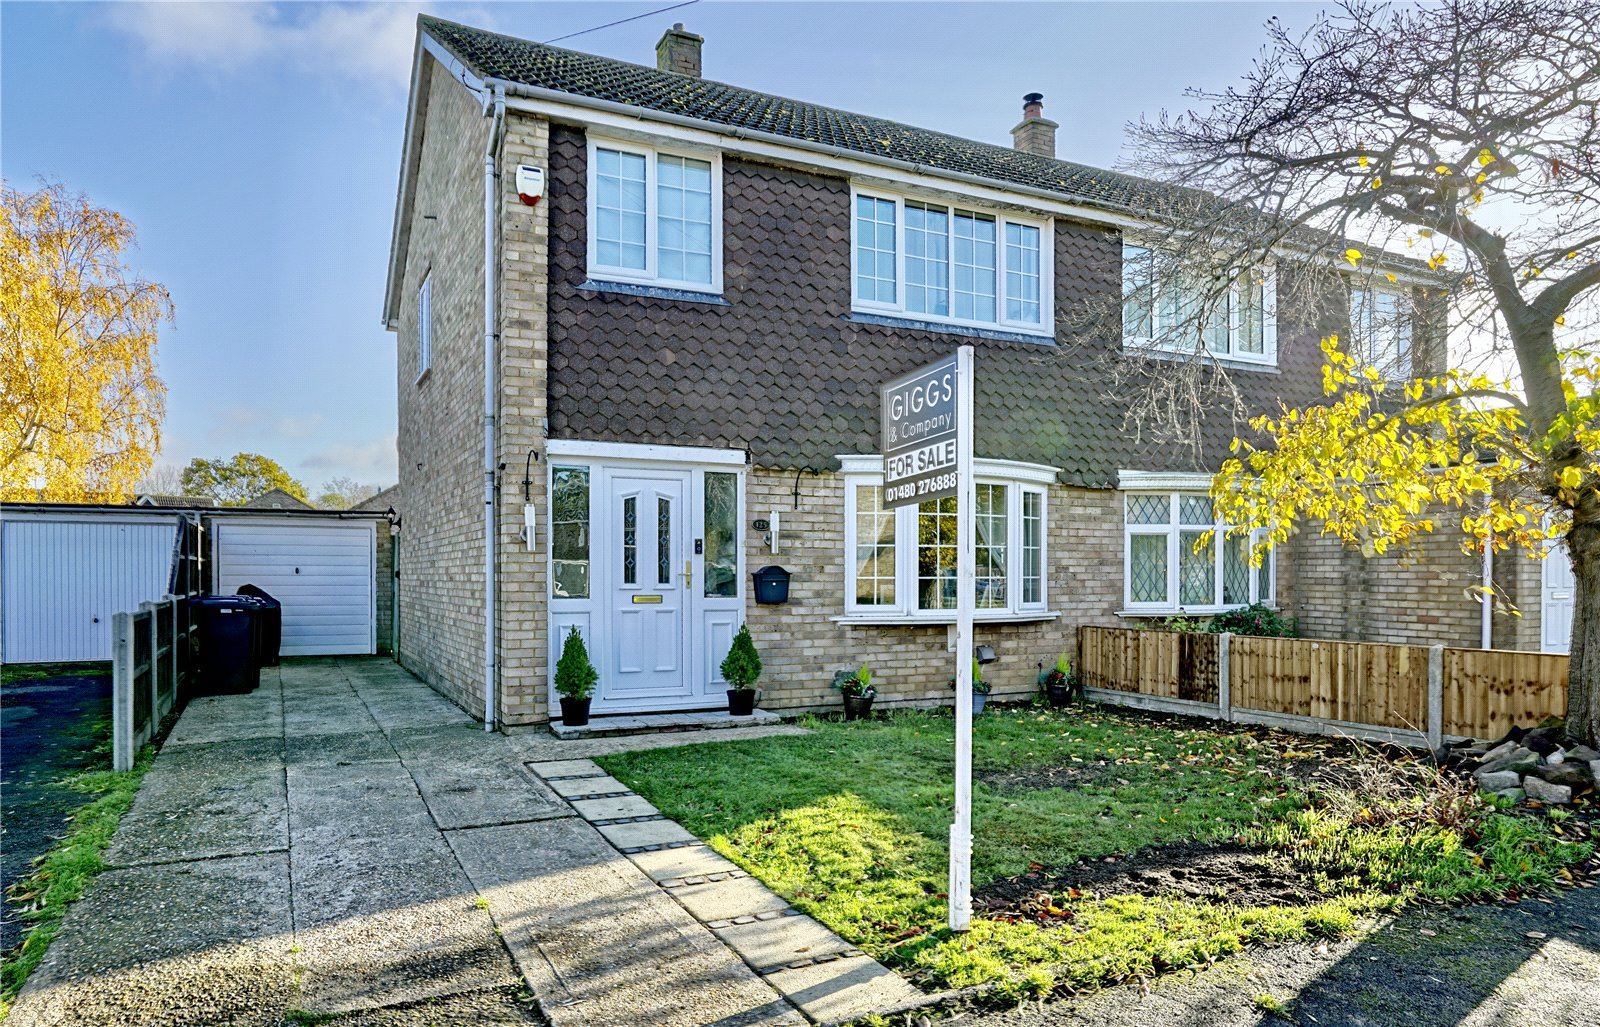 3 bed house for sale in Gordon Road, Little Paxton 0